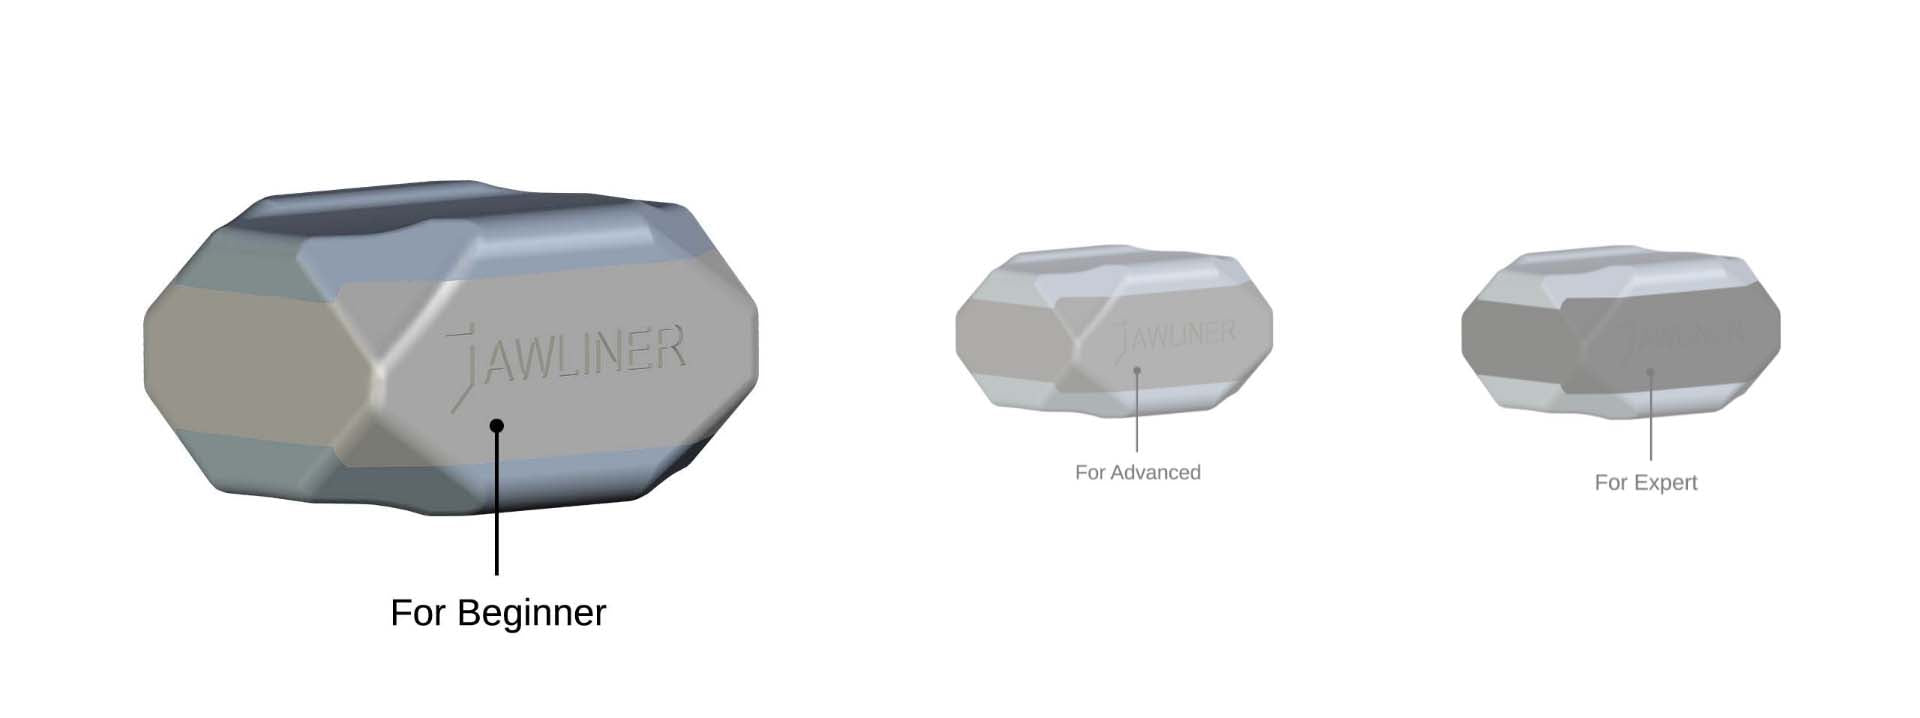 the picture shows the jawliner 3.0 beginner and vs. the jawliner 3.0 advanced vs. the jawliner 3.0 expert